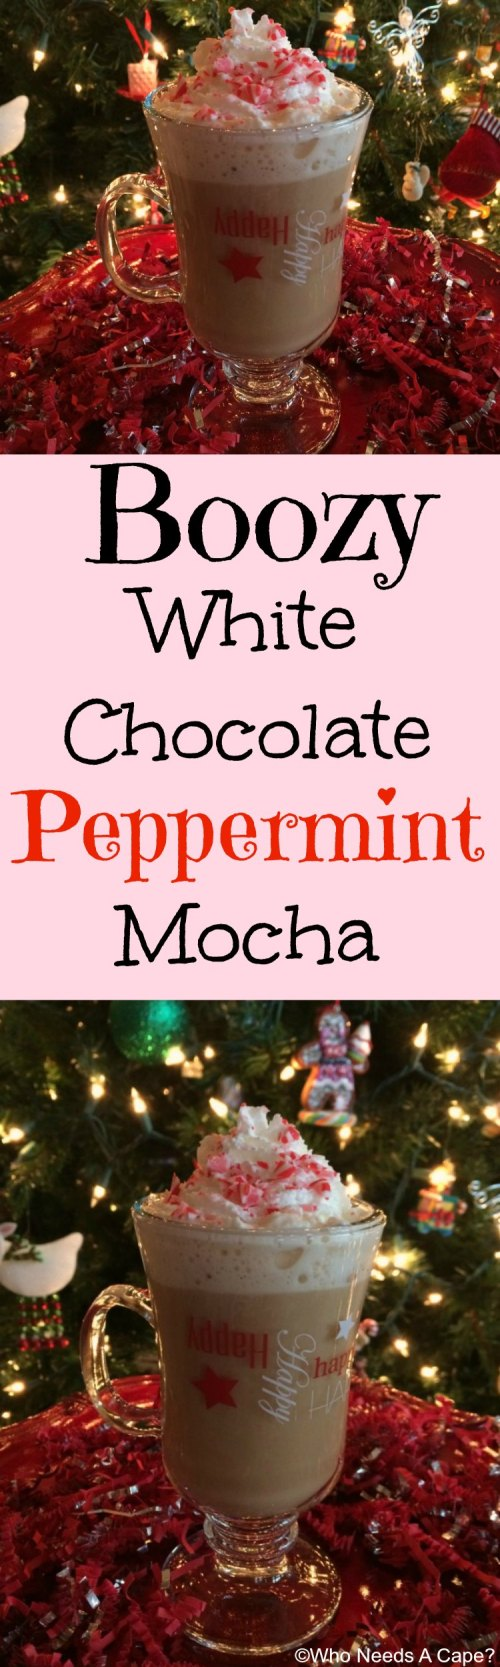 This Boozy White Chocolate Peppermint Mocha is the perfect drink for adults looking to warm up on a cold winter day. The flavors blend deliciously.